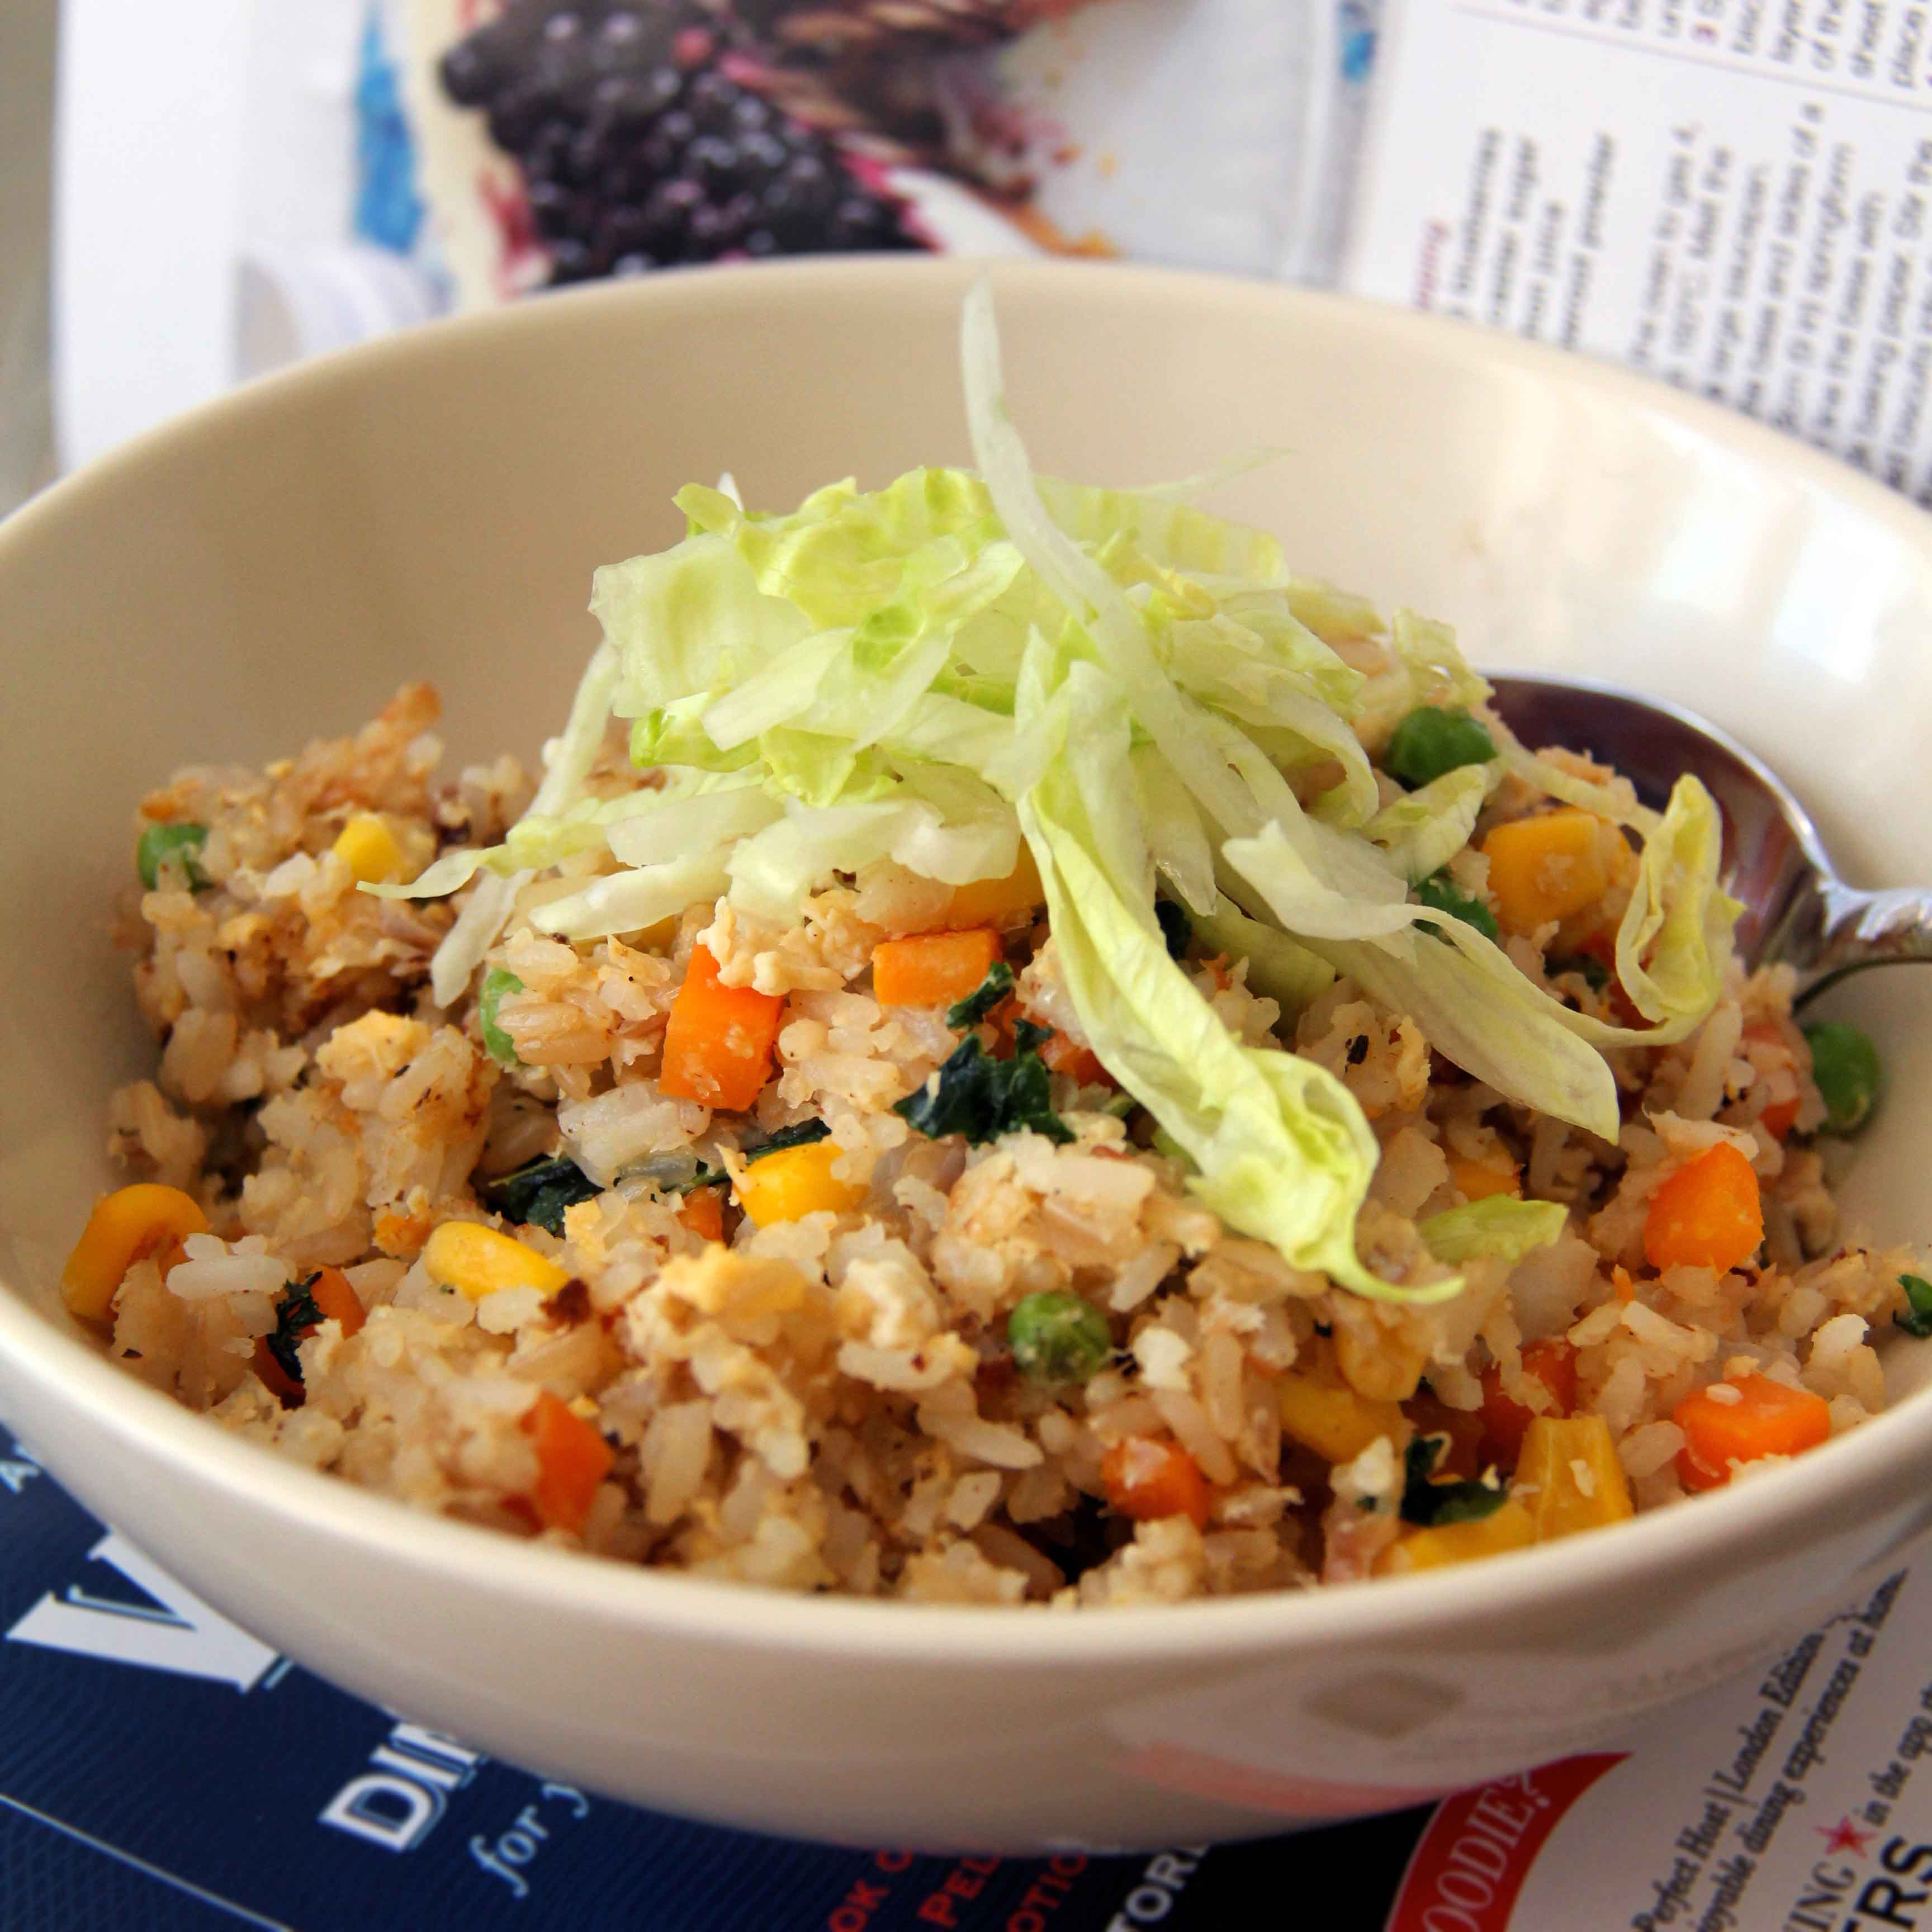 Fried rice paradise whisk knife being able to add in practically anything to the fried rice mix oh and i even get to chop up everything to small bits which is such a joy ccuart Image collections